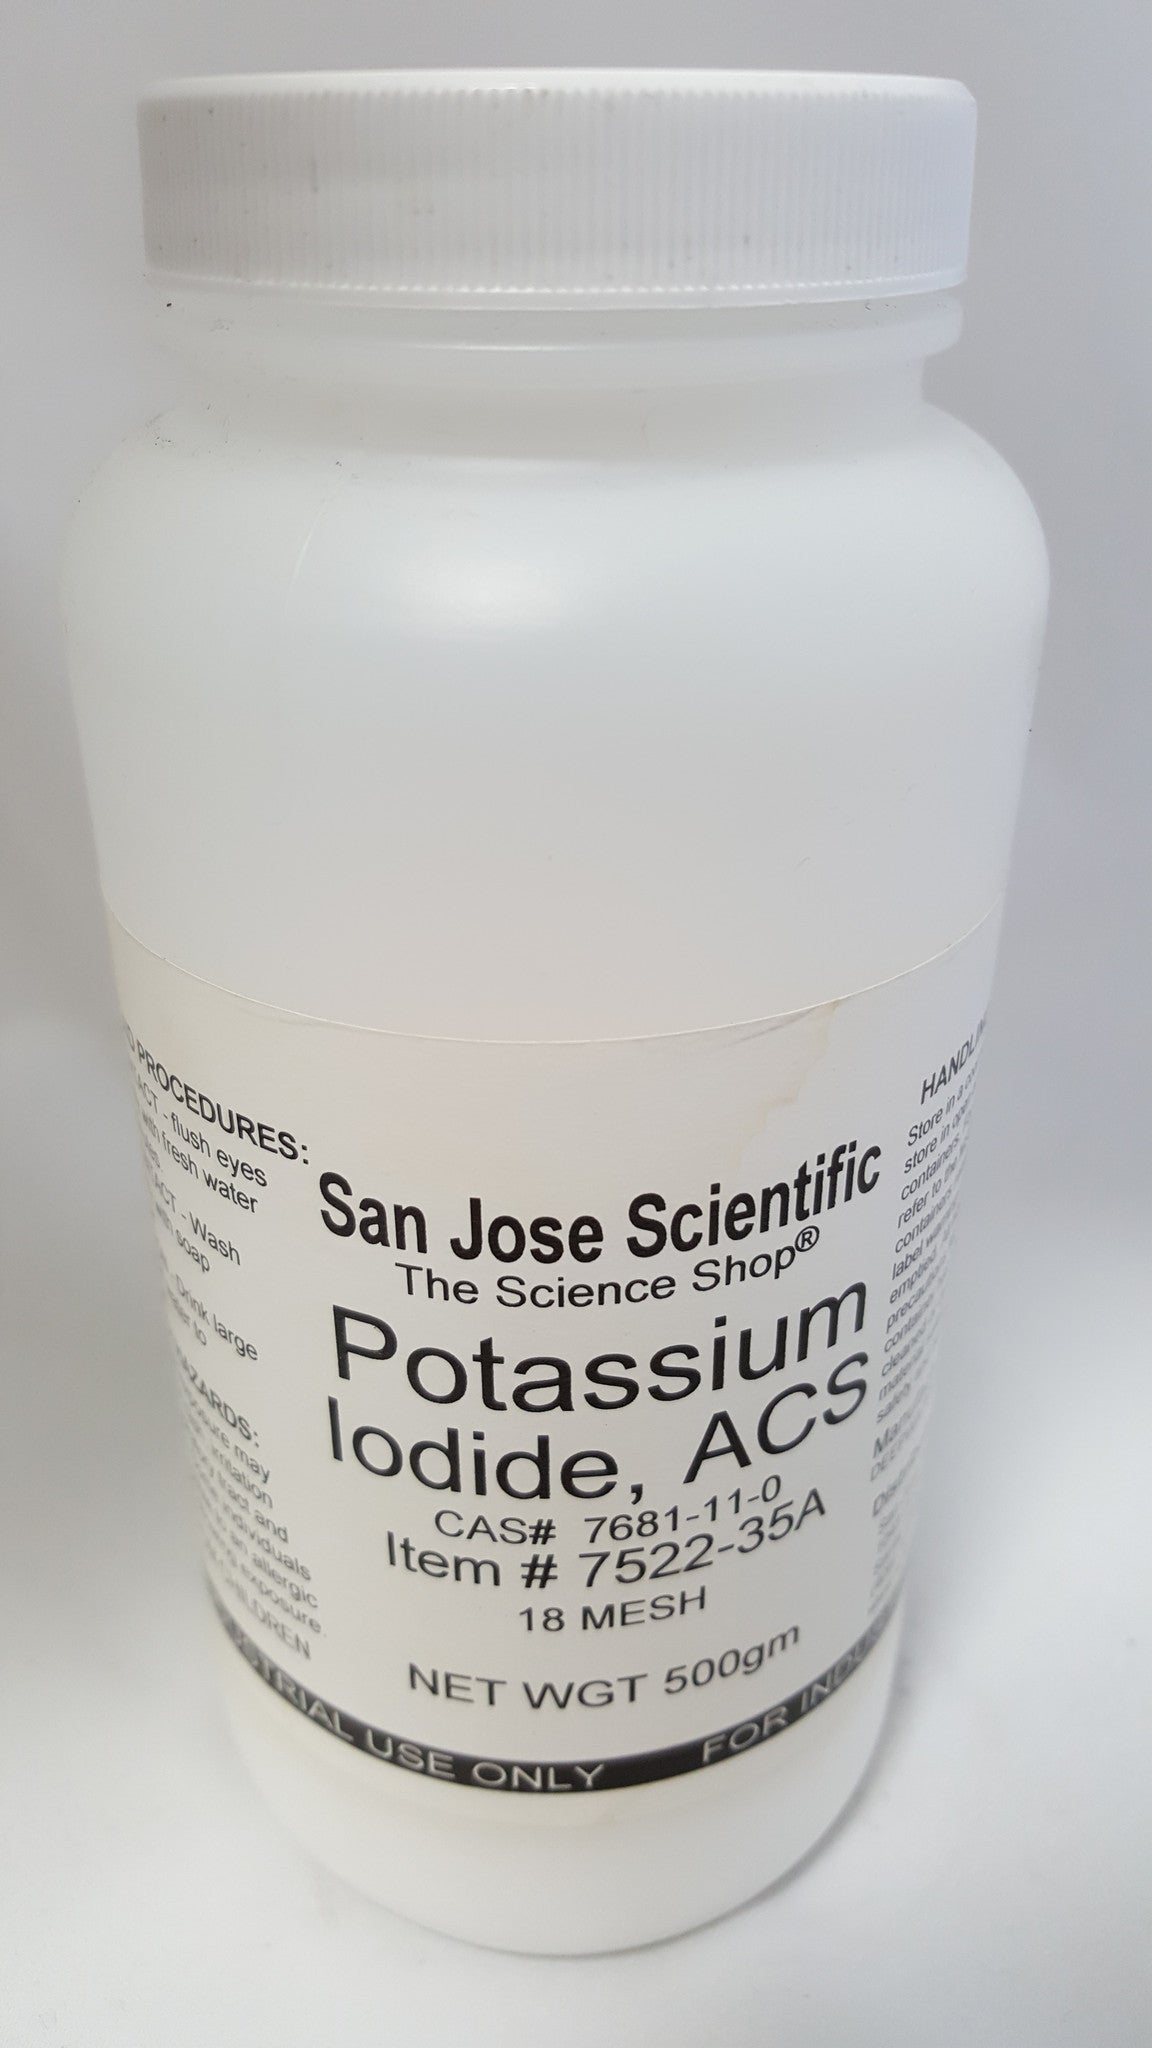 Potassium Iodide Lab Grade 500g - The Science Shop